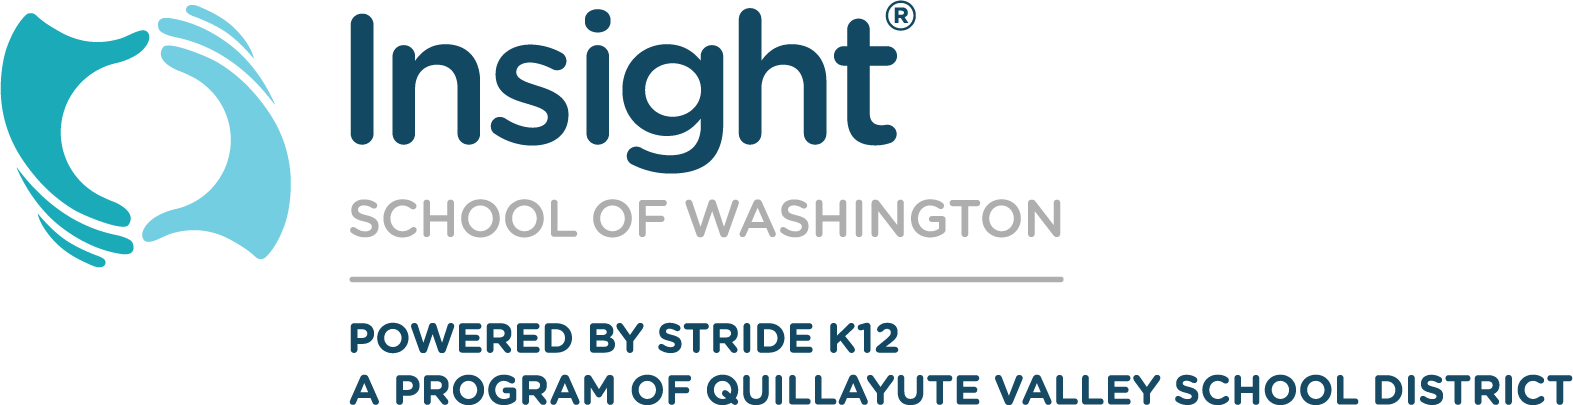 Logo of Insight School of Washington - Powered by K12